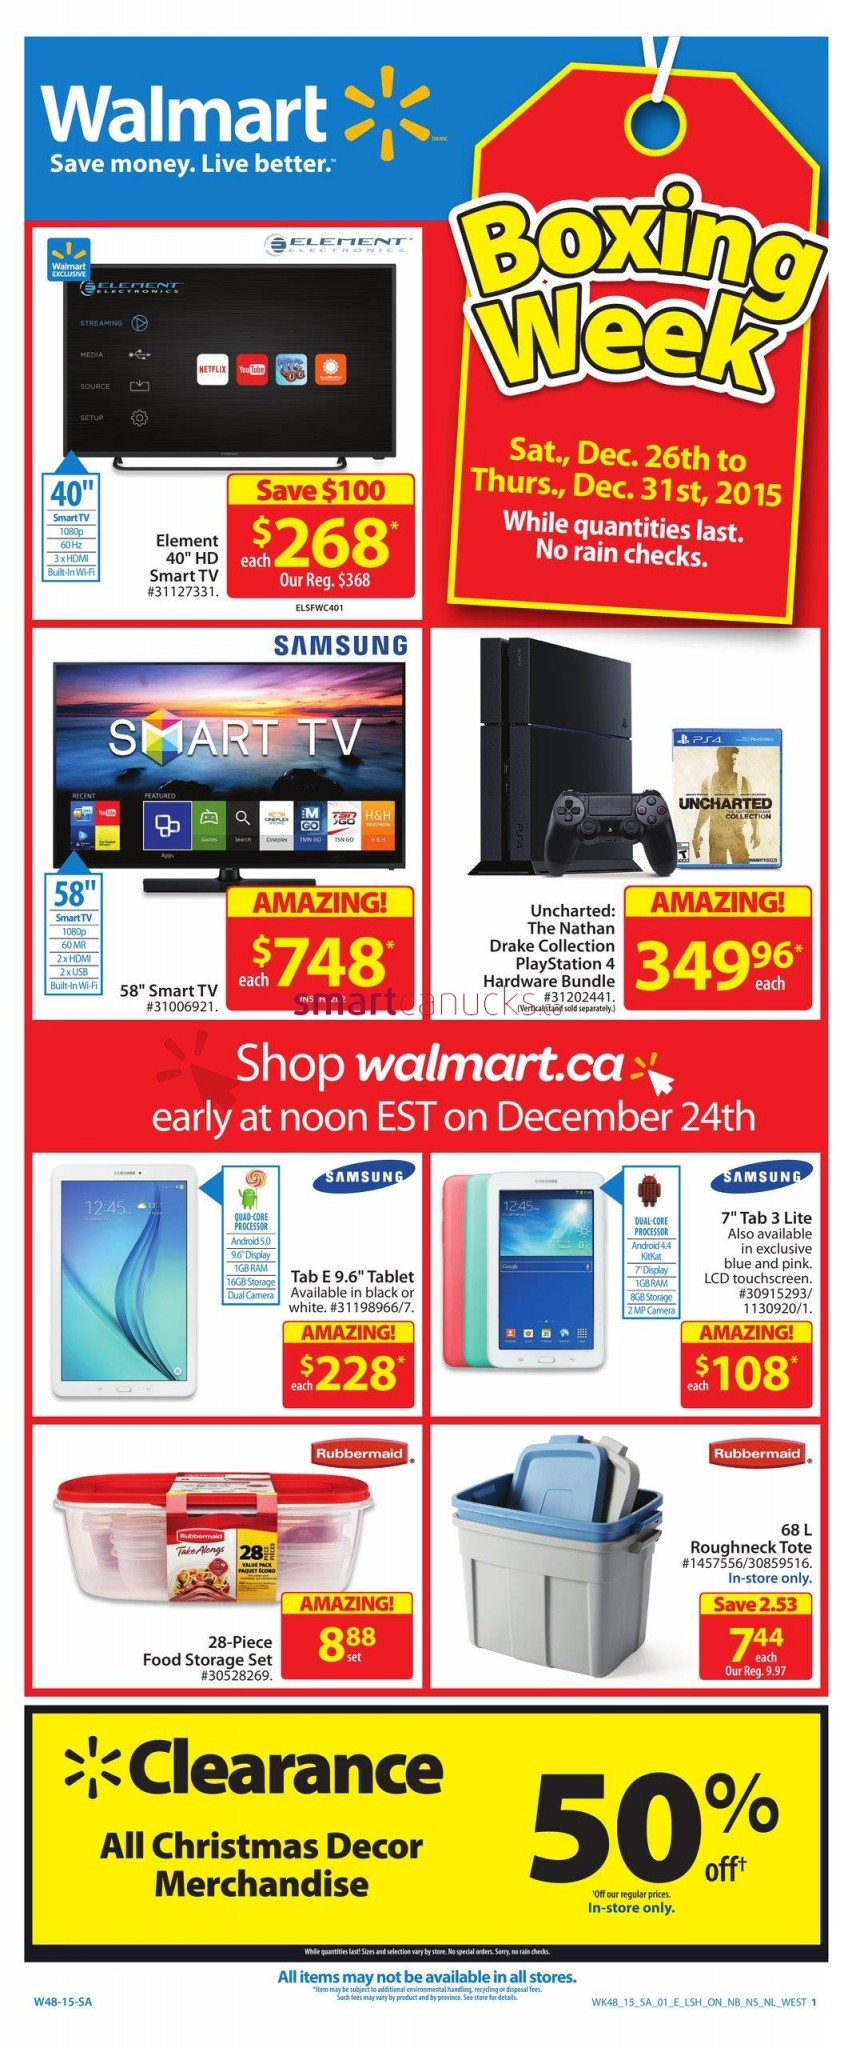 Browse Walmart's flyers for great Black Friday deals and the best Cyber Monday deals on the largest variety of merchandise. Whether you are looking for house supplies, electronics or hardware, Walmart has got all your needs covered this Black Friday.